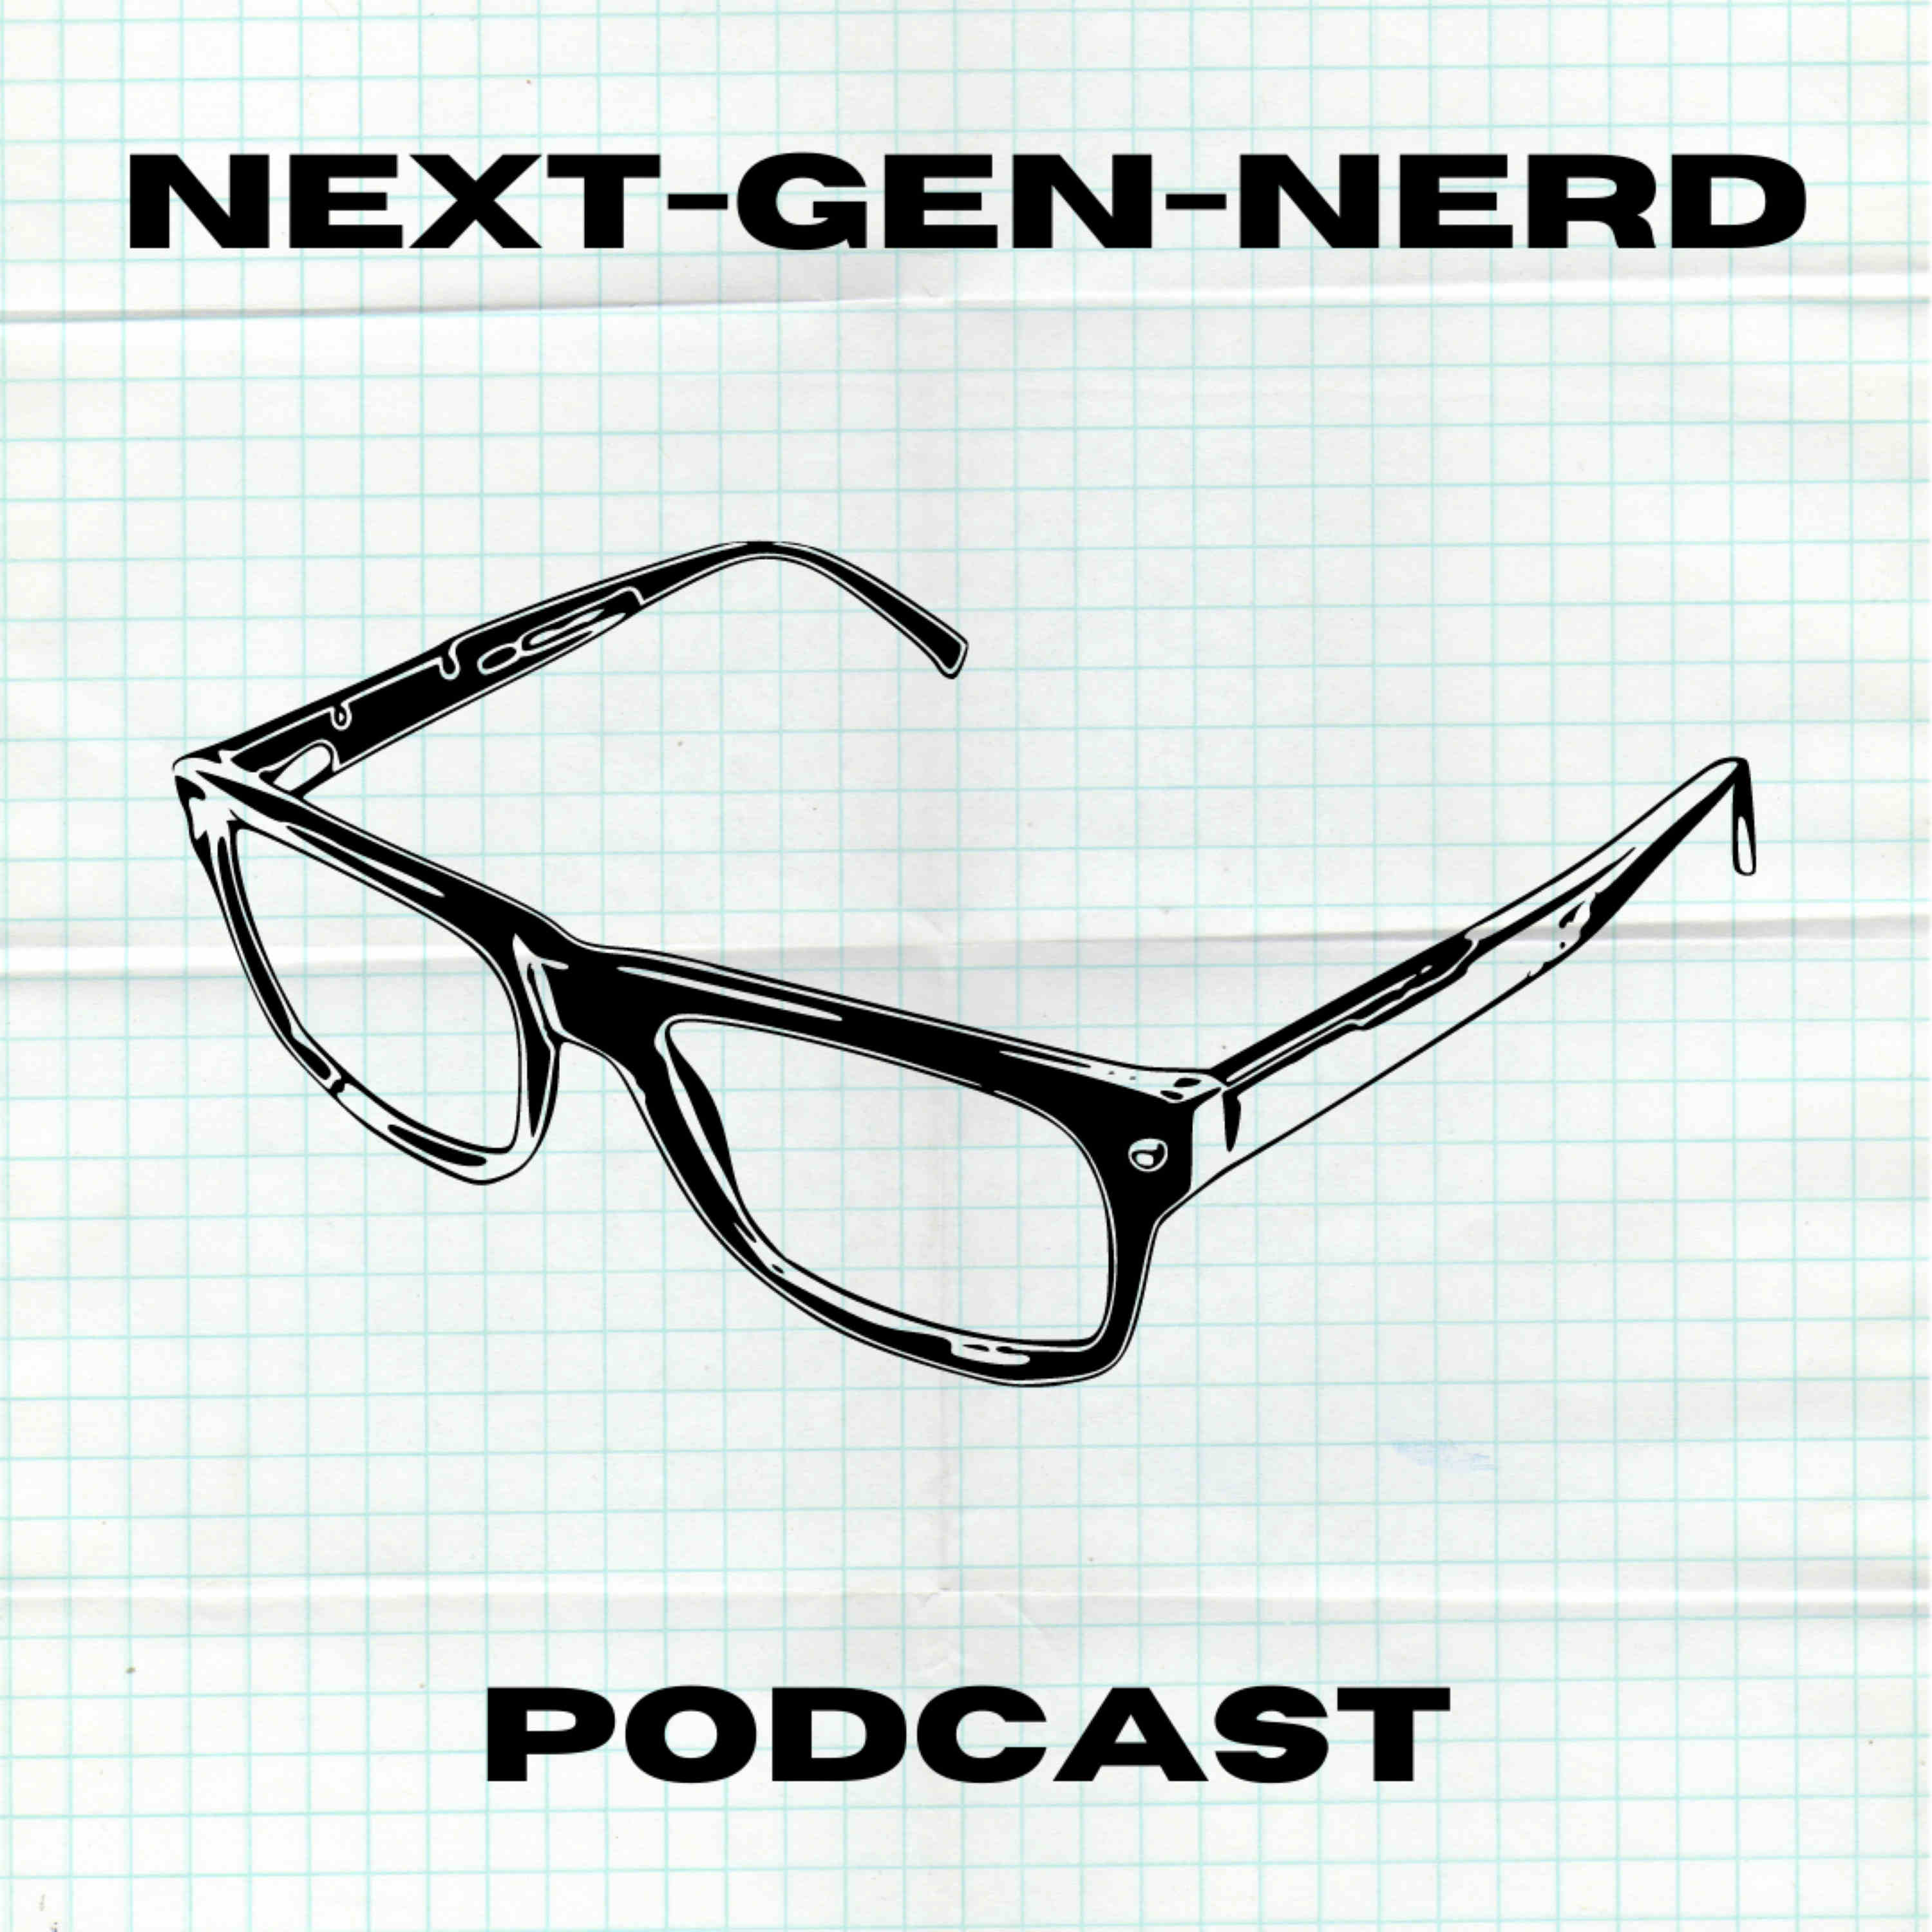 The NextGen Nerd Podcast!